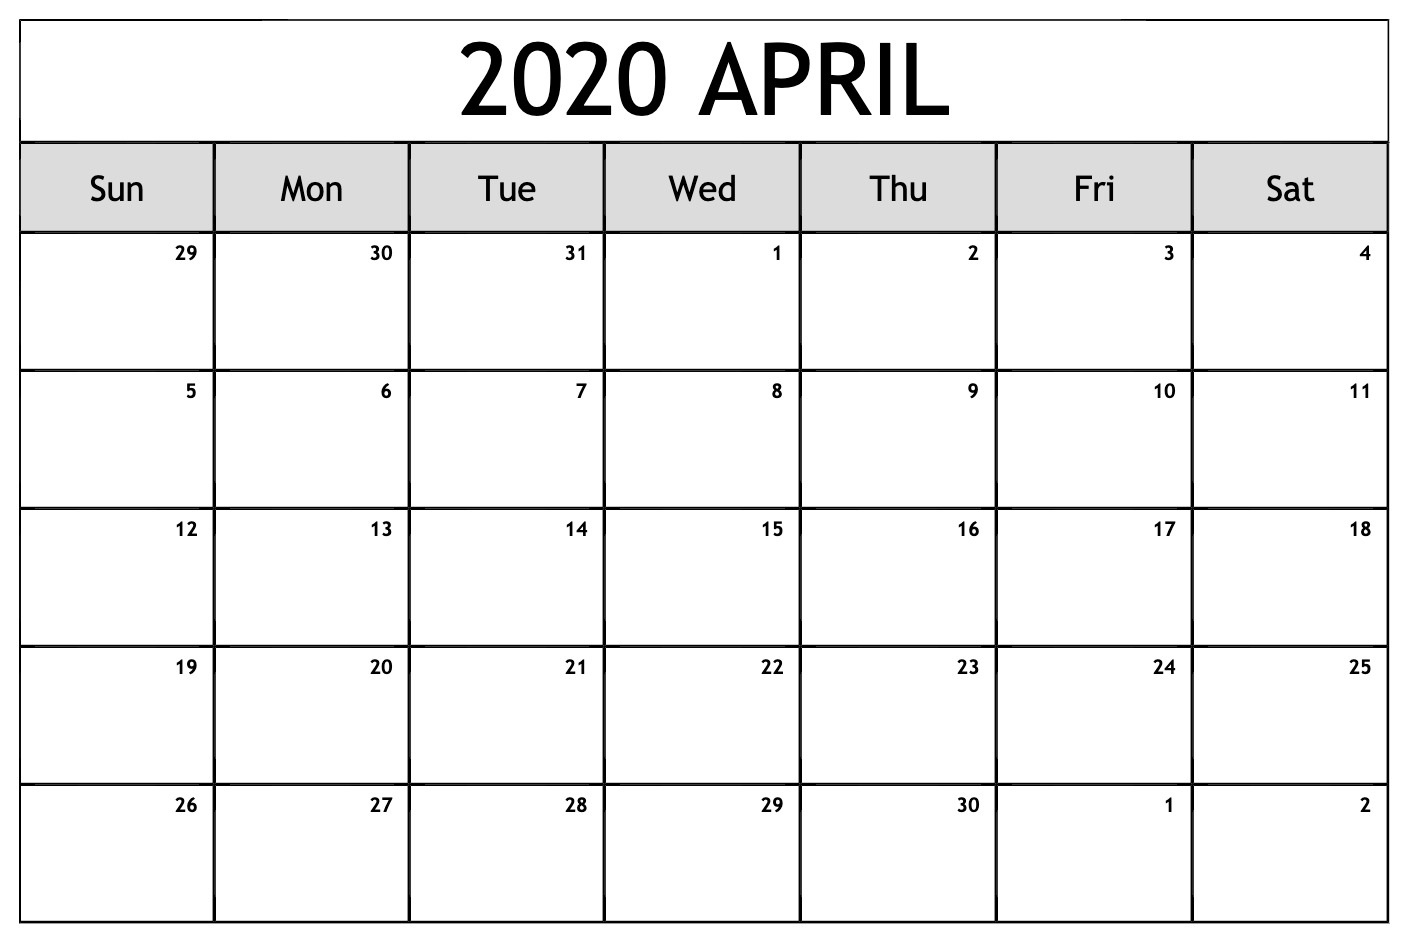 April Monthly Calendar 2020